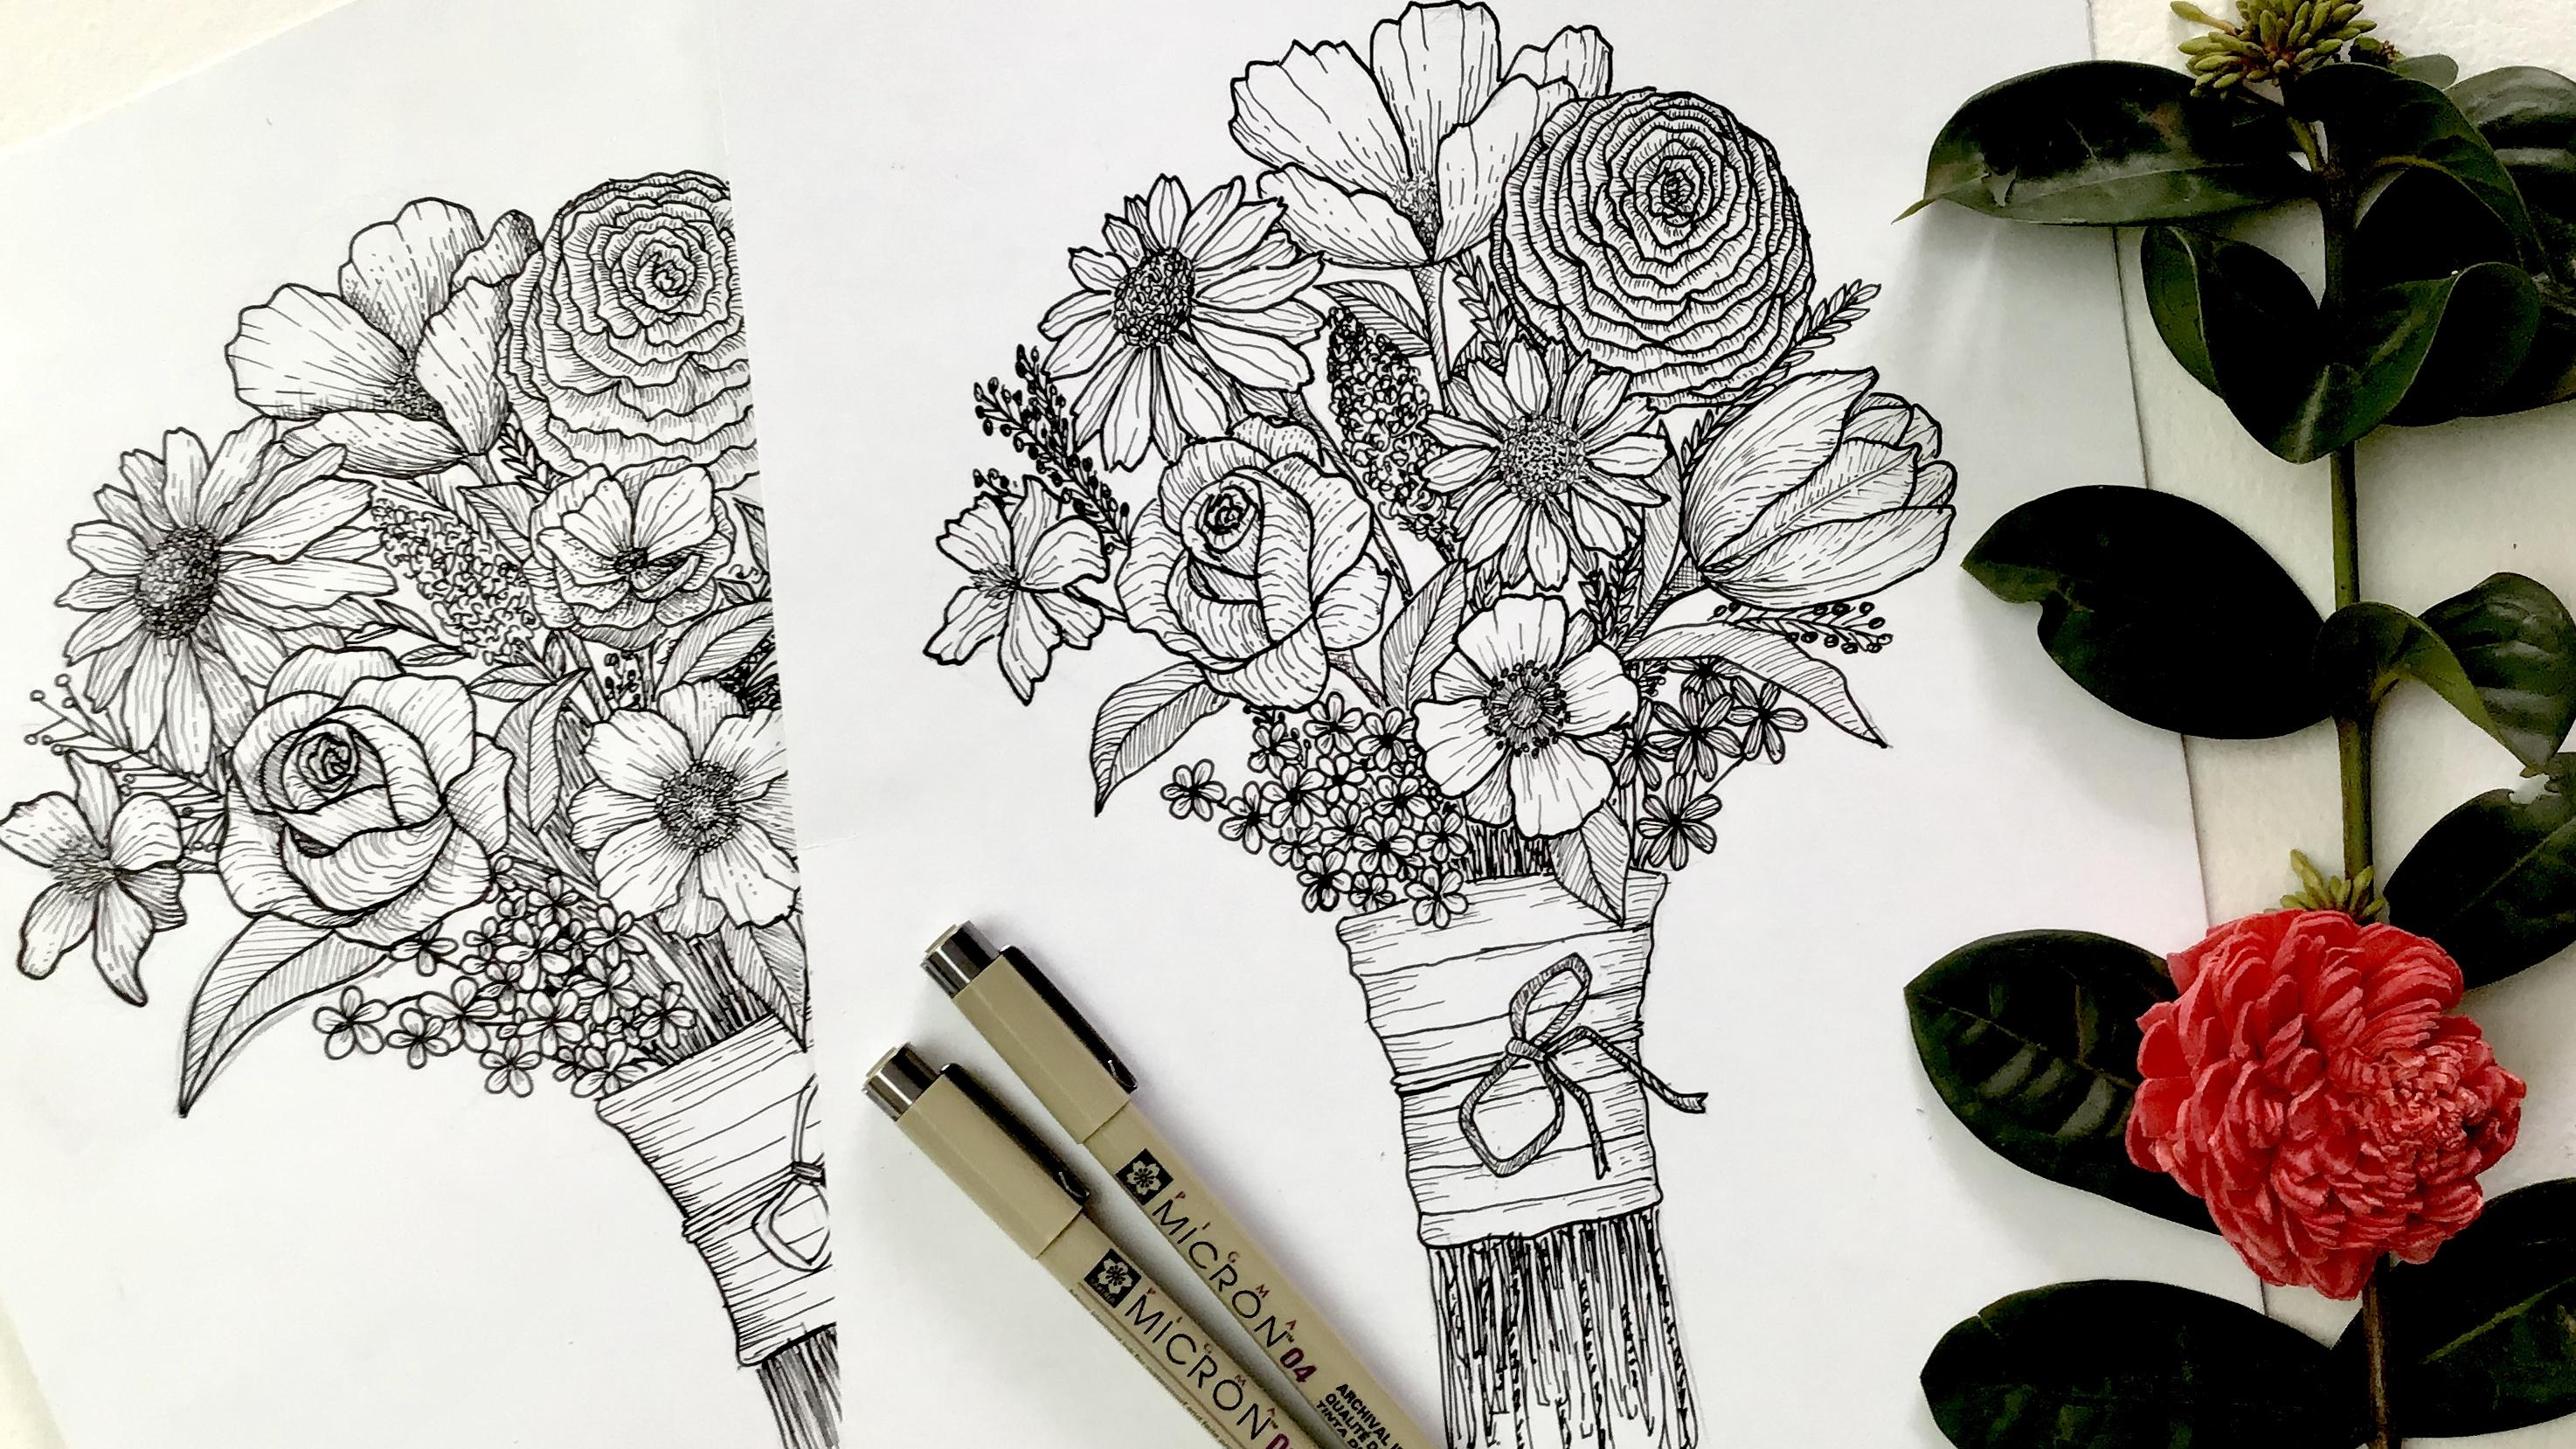 Floral Illustration Learn To Draw A Flower Bouquet Ink Pen Drawing Meenakshi Chinniah Skillshare